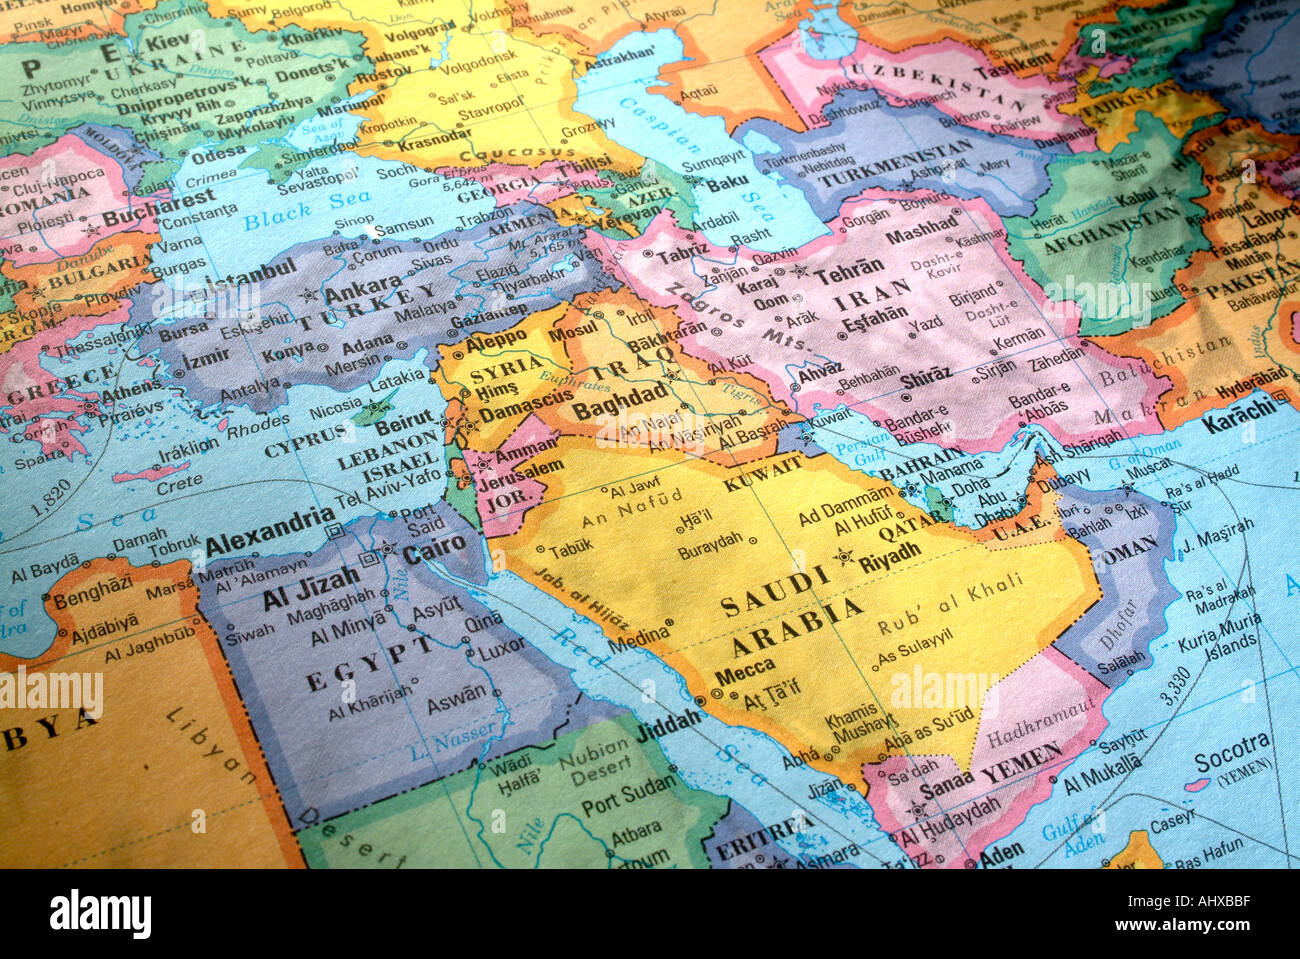 World Map Countries Continents.Illustrated World Map With Countries And Continents Stock Photo